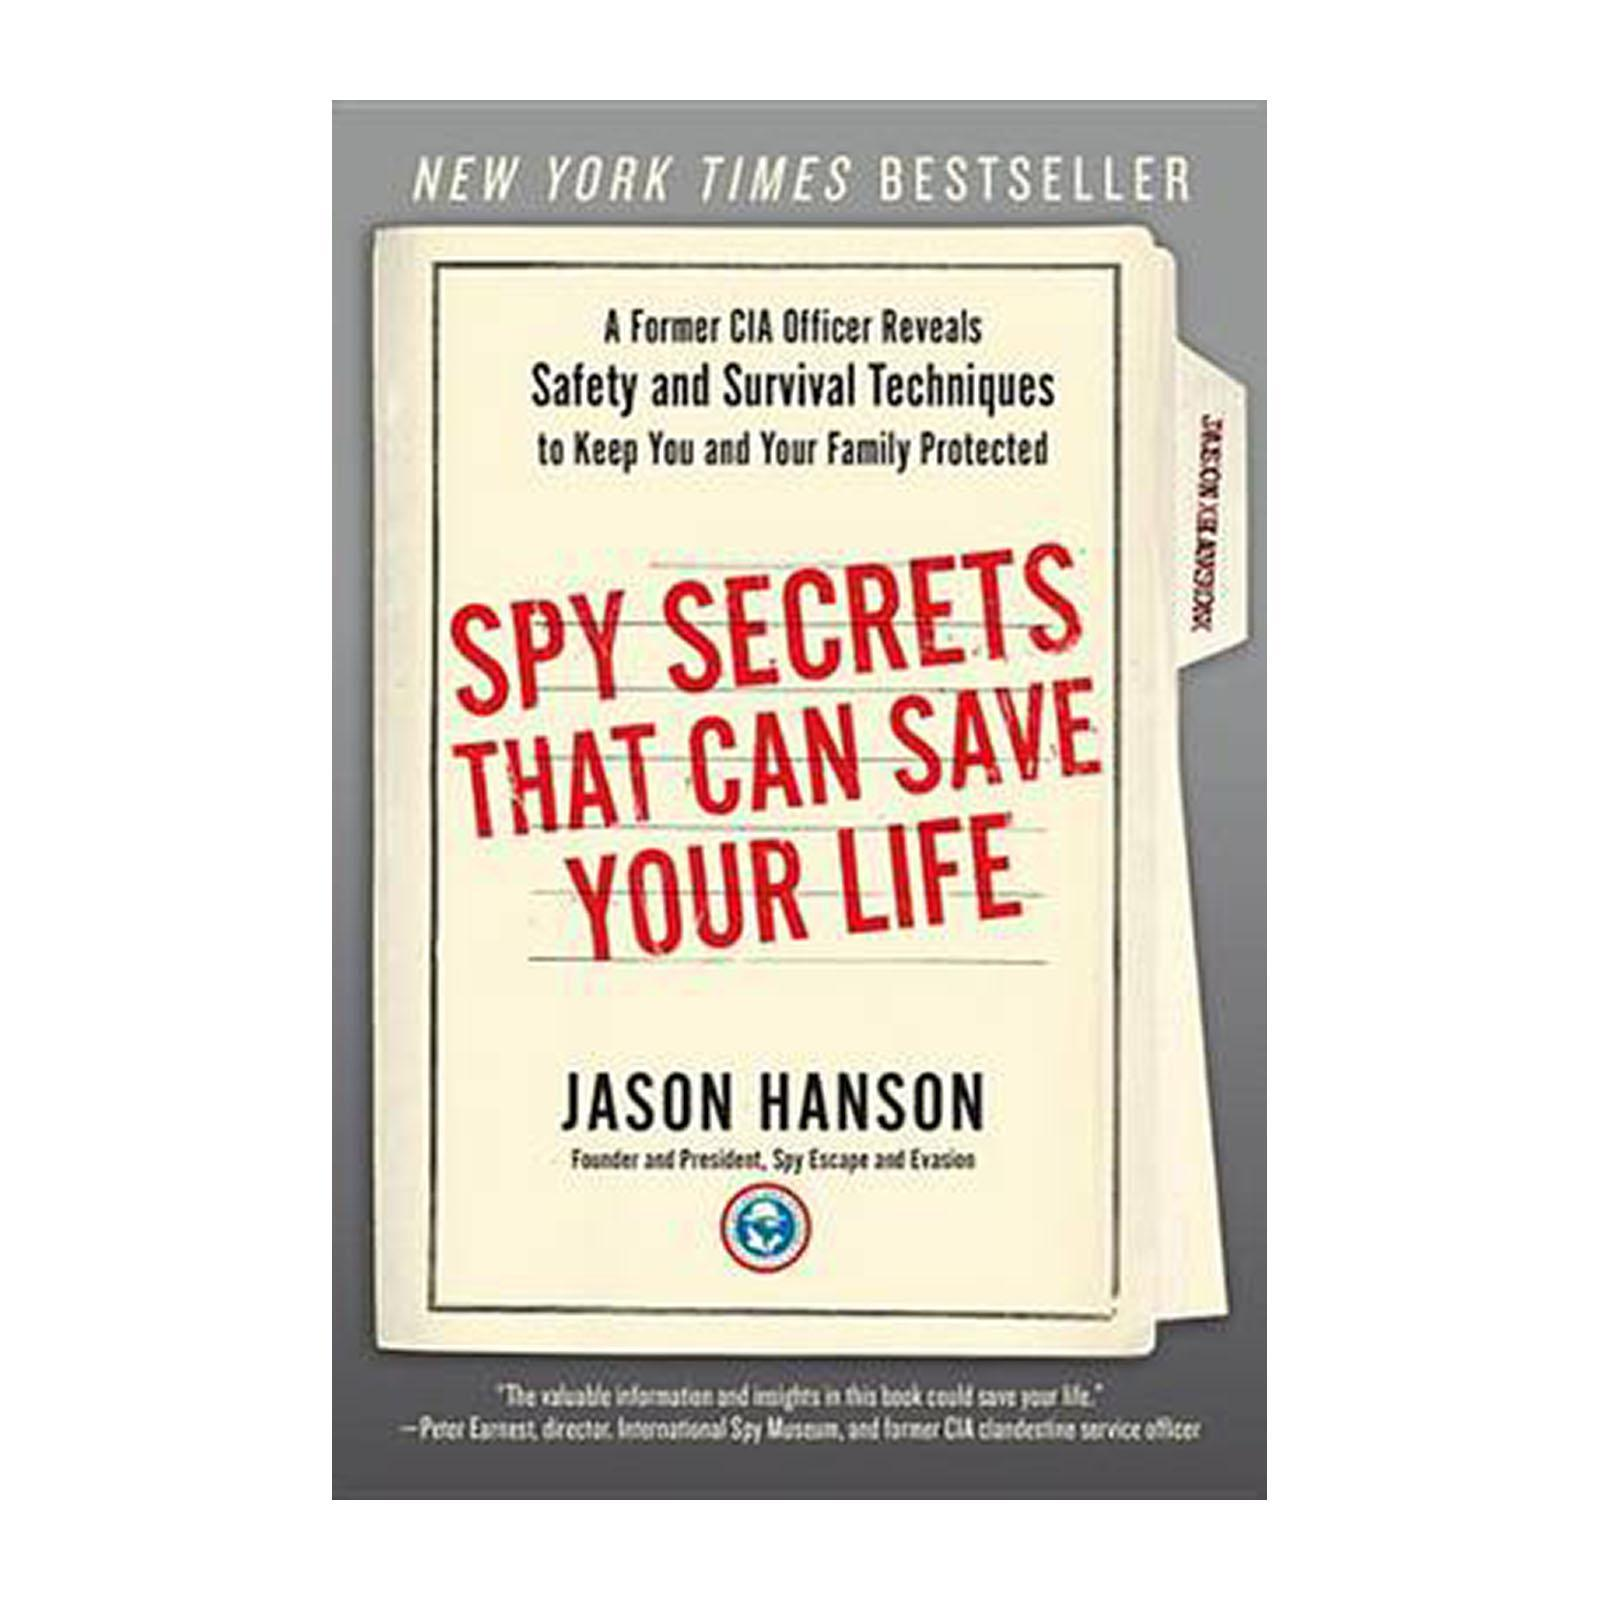 Spy Secrets That Can Save Your Life: A Former Cia Officer Reveals Safety And Survival Techniques To Keep You And Your Family Protected (Paperback)